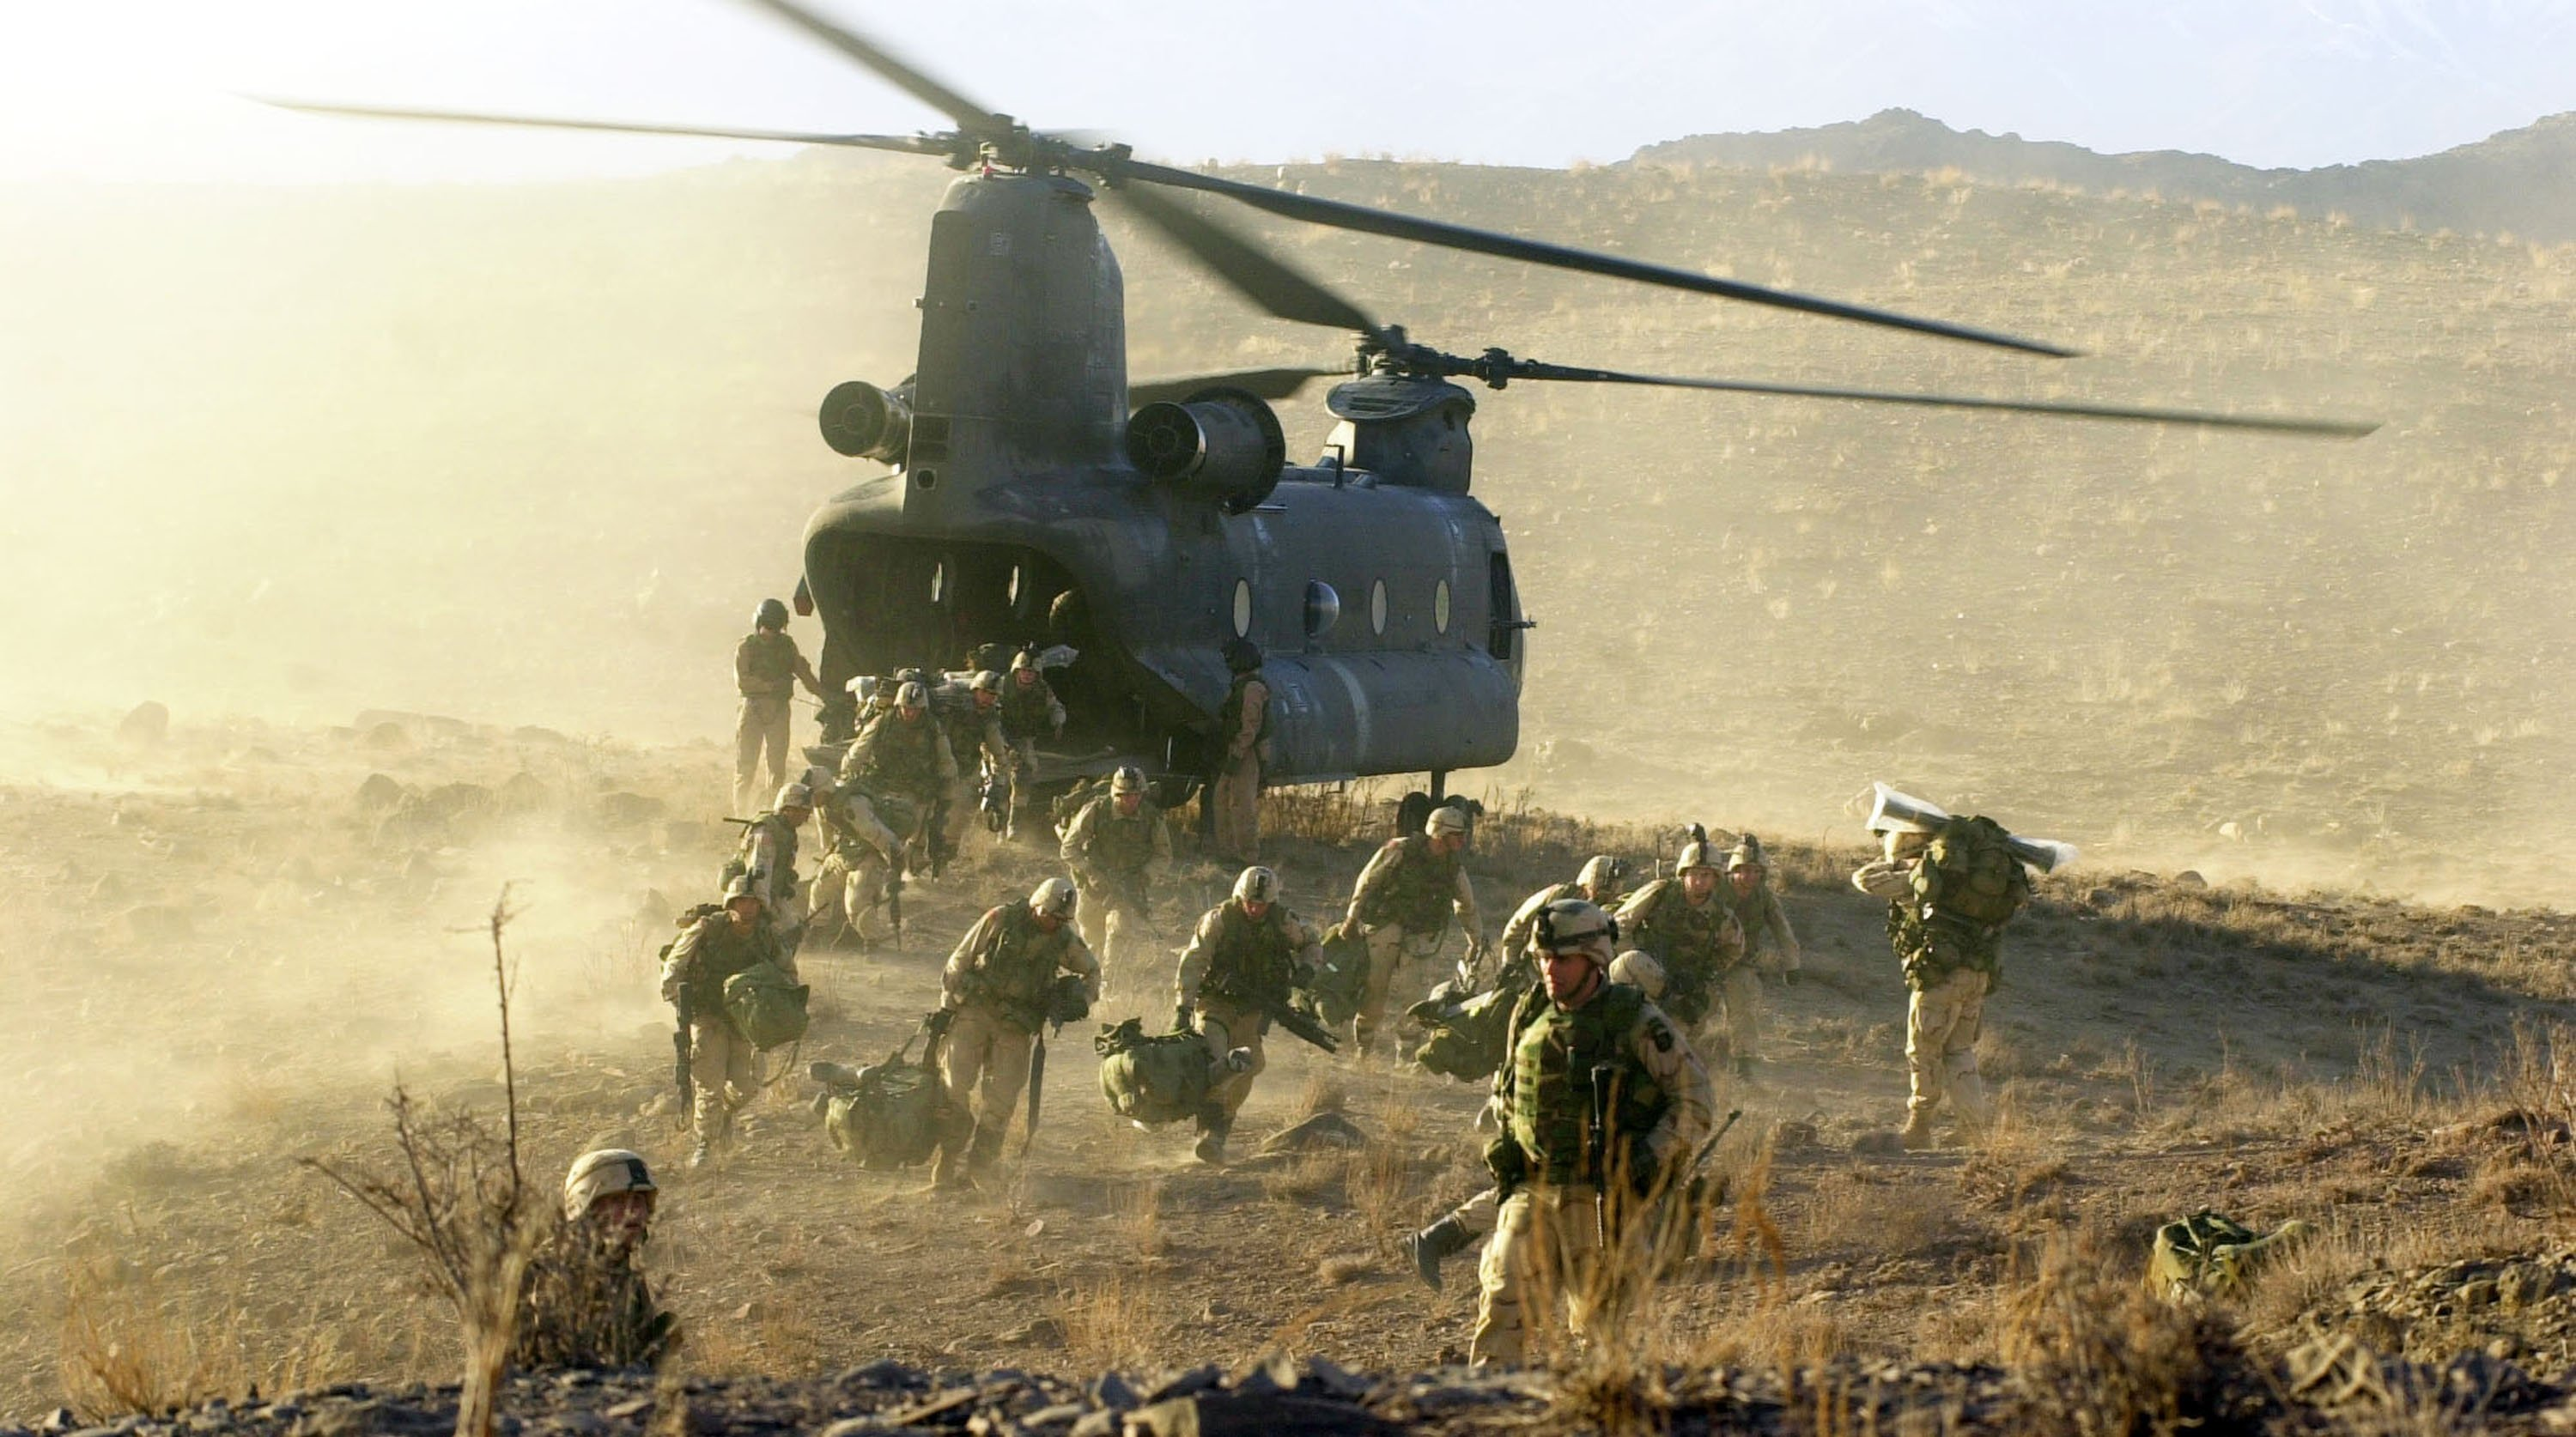 U.S. soldiers from the 101st Airborne division off-load during a combat mission from a Chinook 47 helicopter, in eastern Afghanistan, March 5, 2002. (Photo by Getty Images)